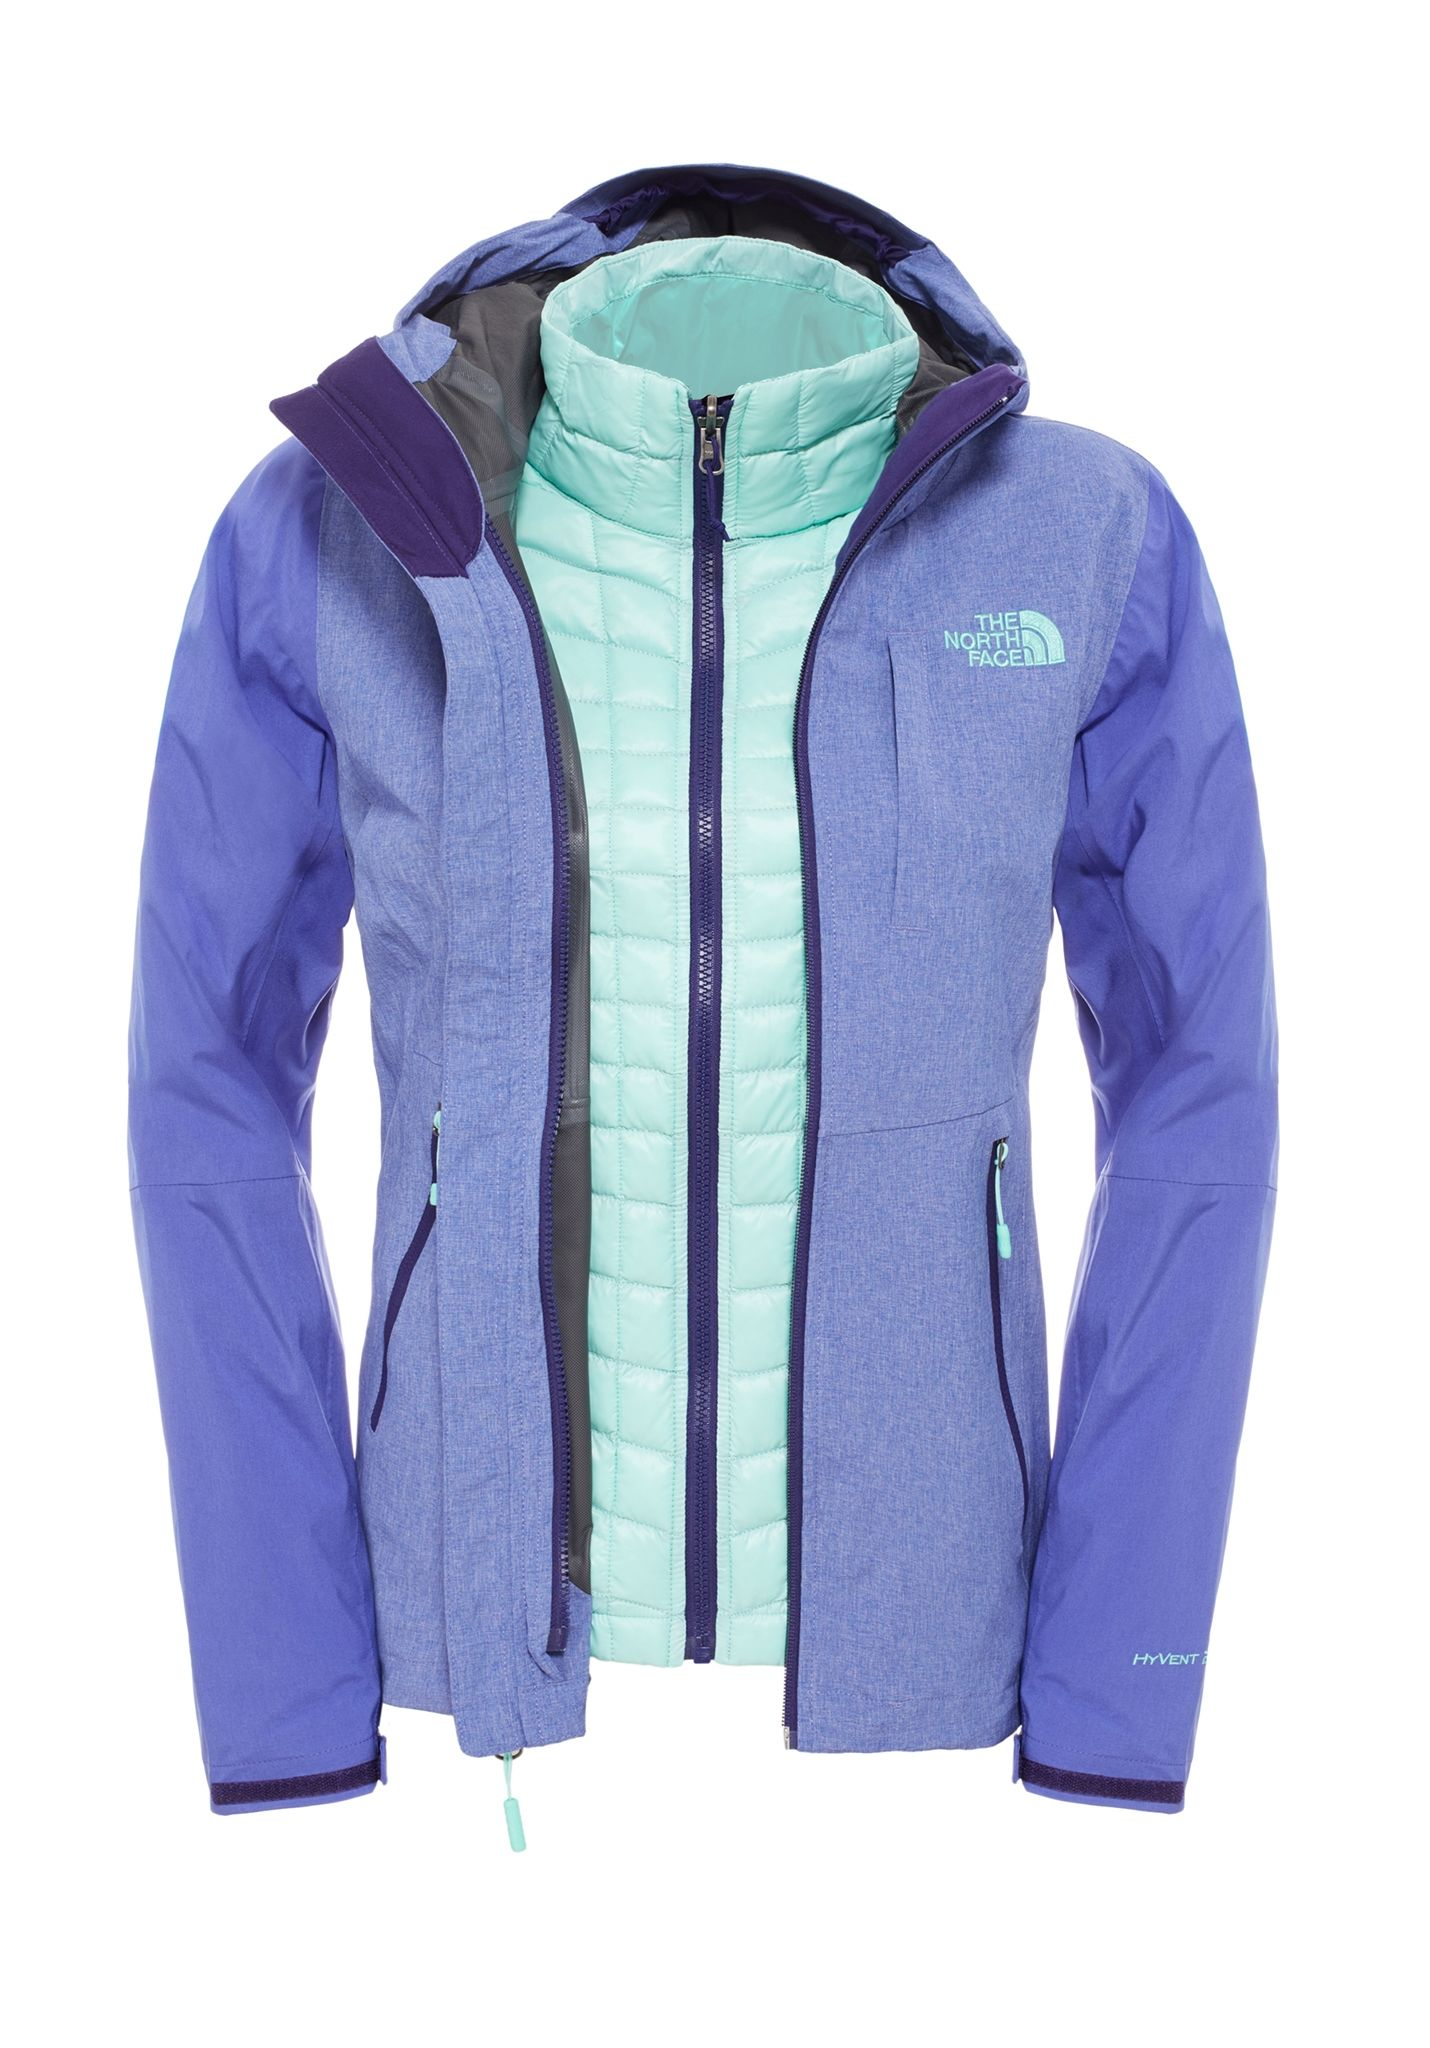 THE NORTH FACE Thermoball Triclimate - Chaqueta funcional para Mujeres -  Verde - Planet Sports 0cfdbcaa95902